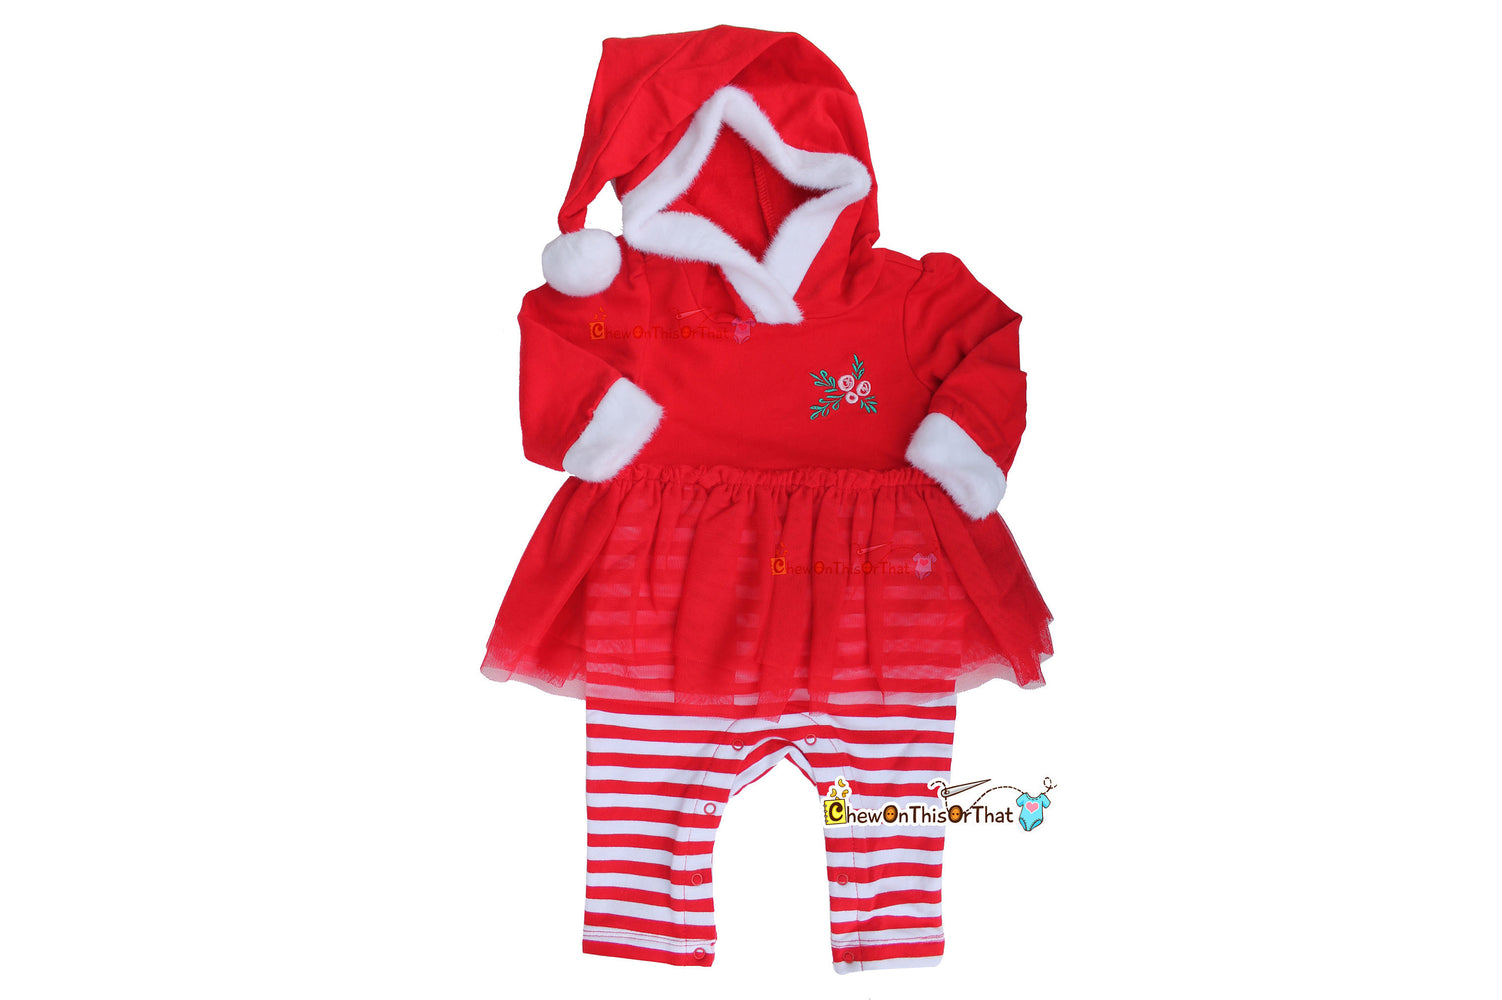 Rockettes Inspired Mrs Santa Claus Red Bodysuit Dress Christmas - Chew On This Or That